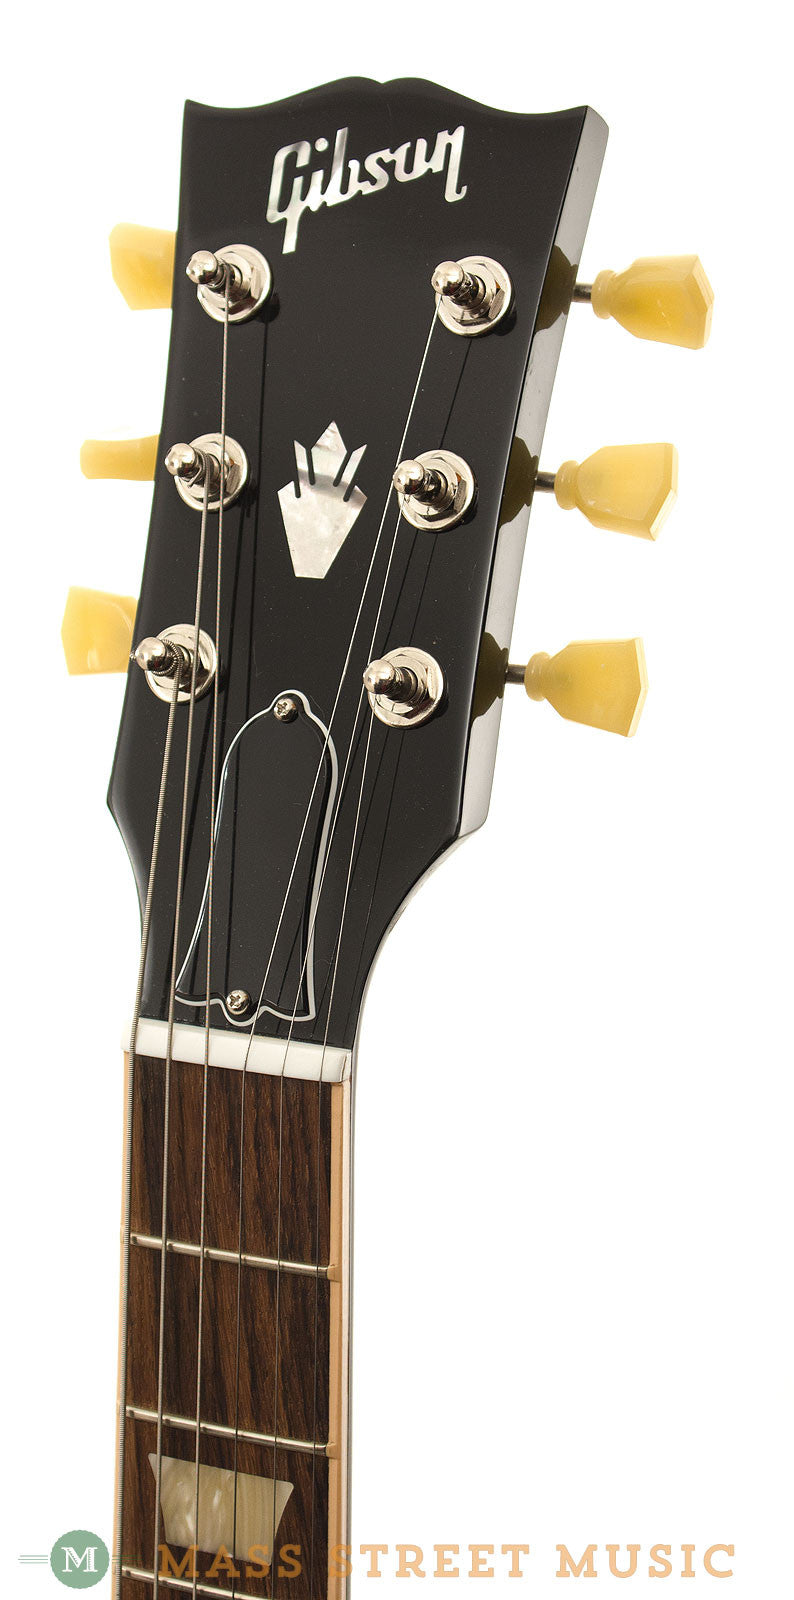 gibson sg standard 2013 used excellent condition with hard case mass street music store. Black Bedroom Furniture Sets. Home Design Ideas